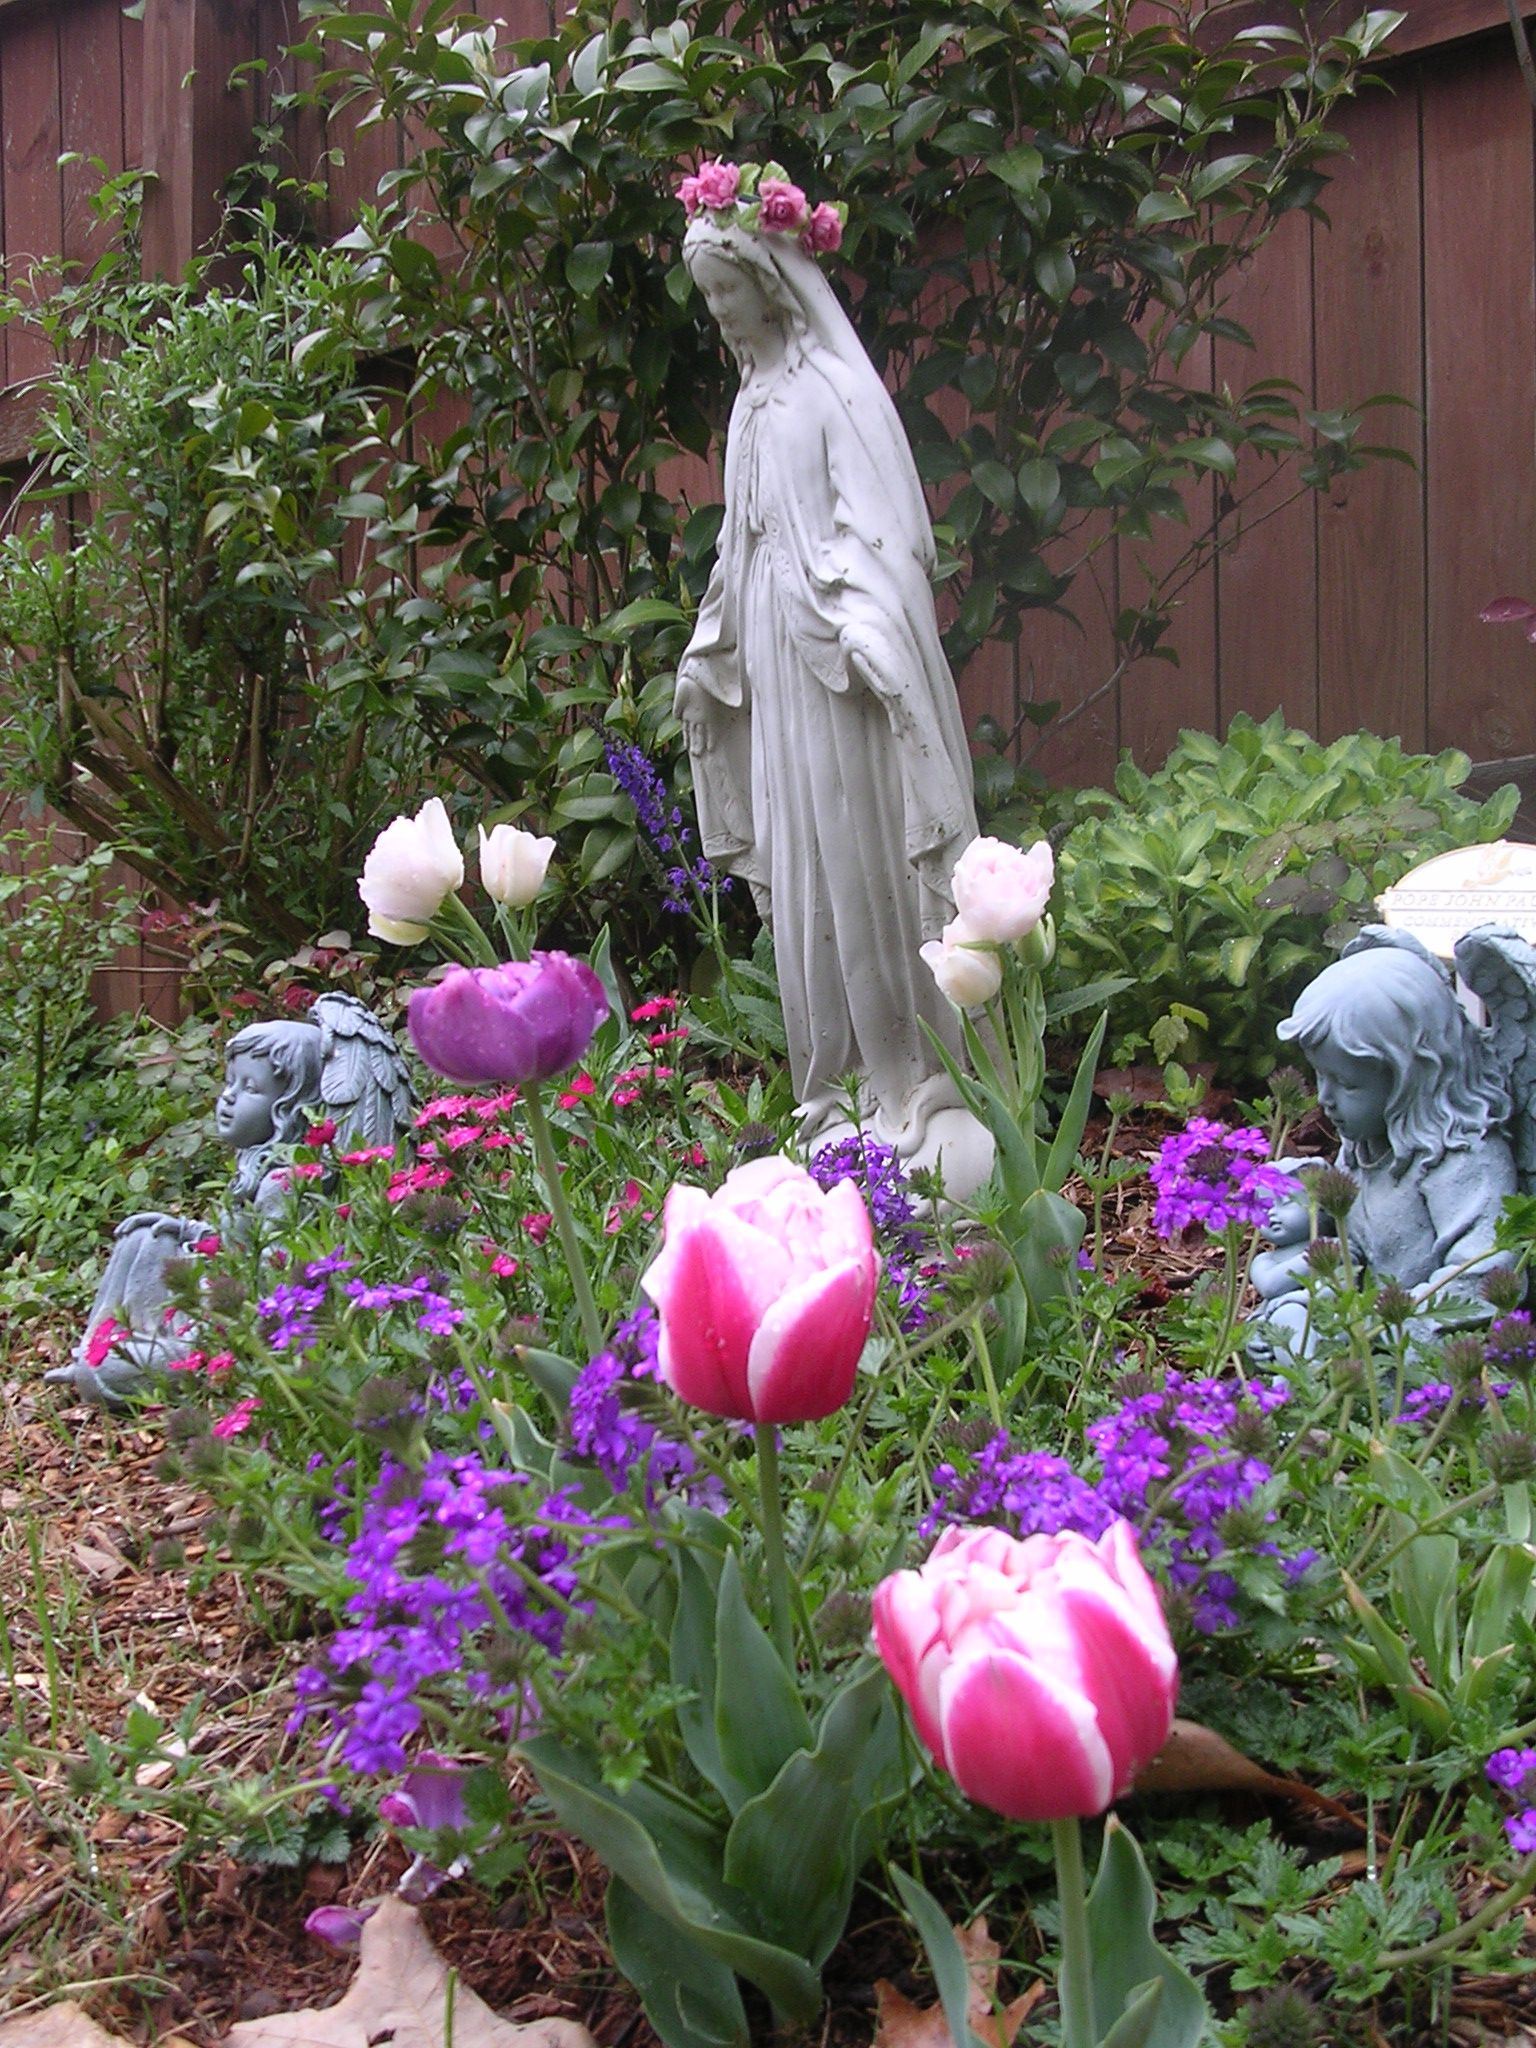 idea for Mary's garden! Check this out Julie! @Julie Fraser